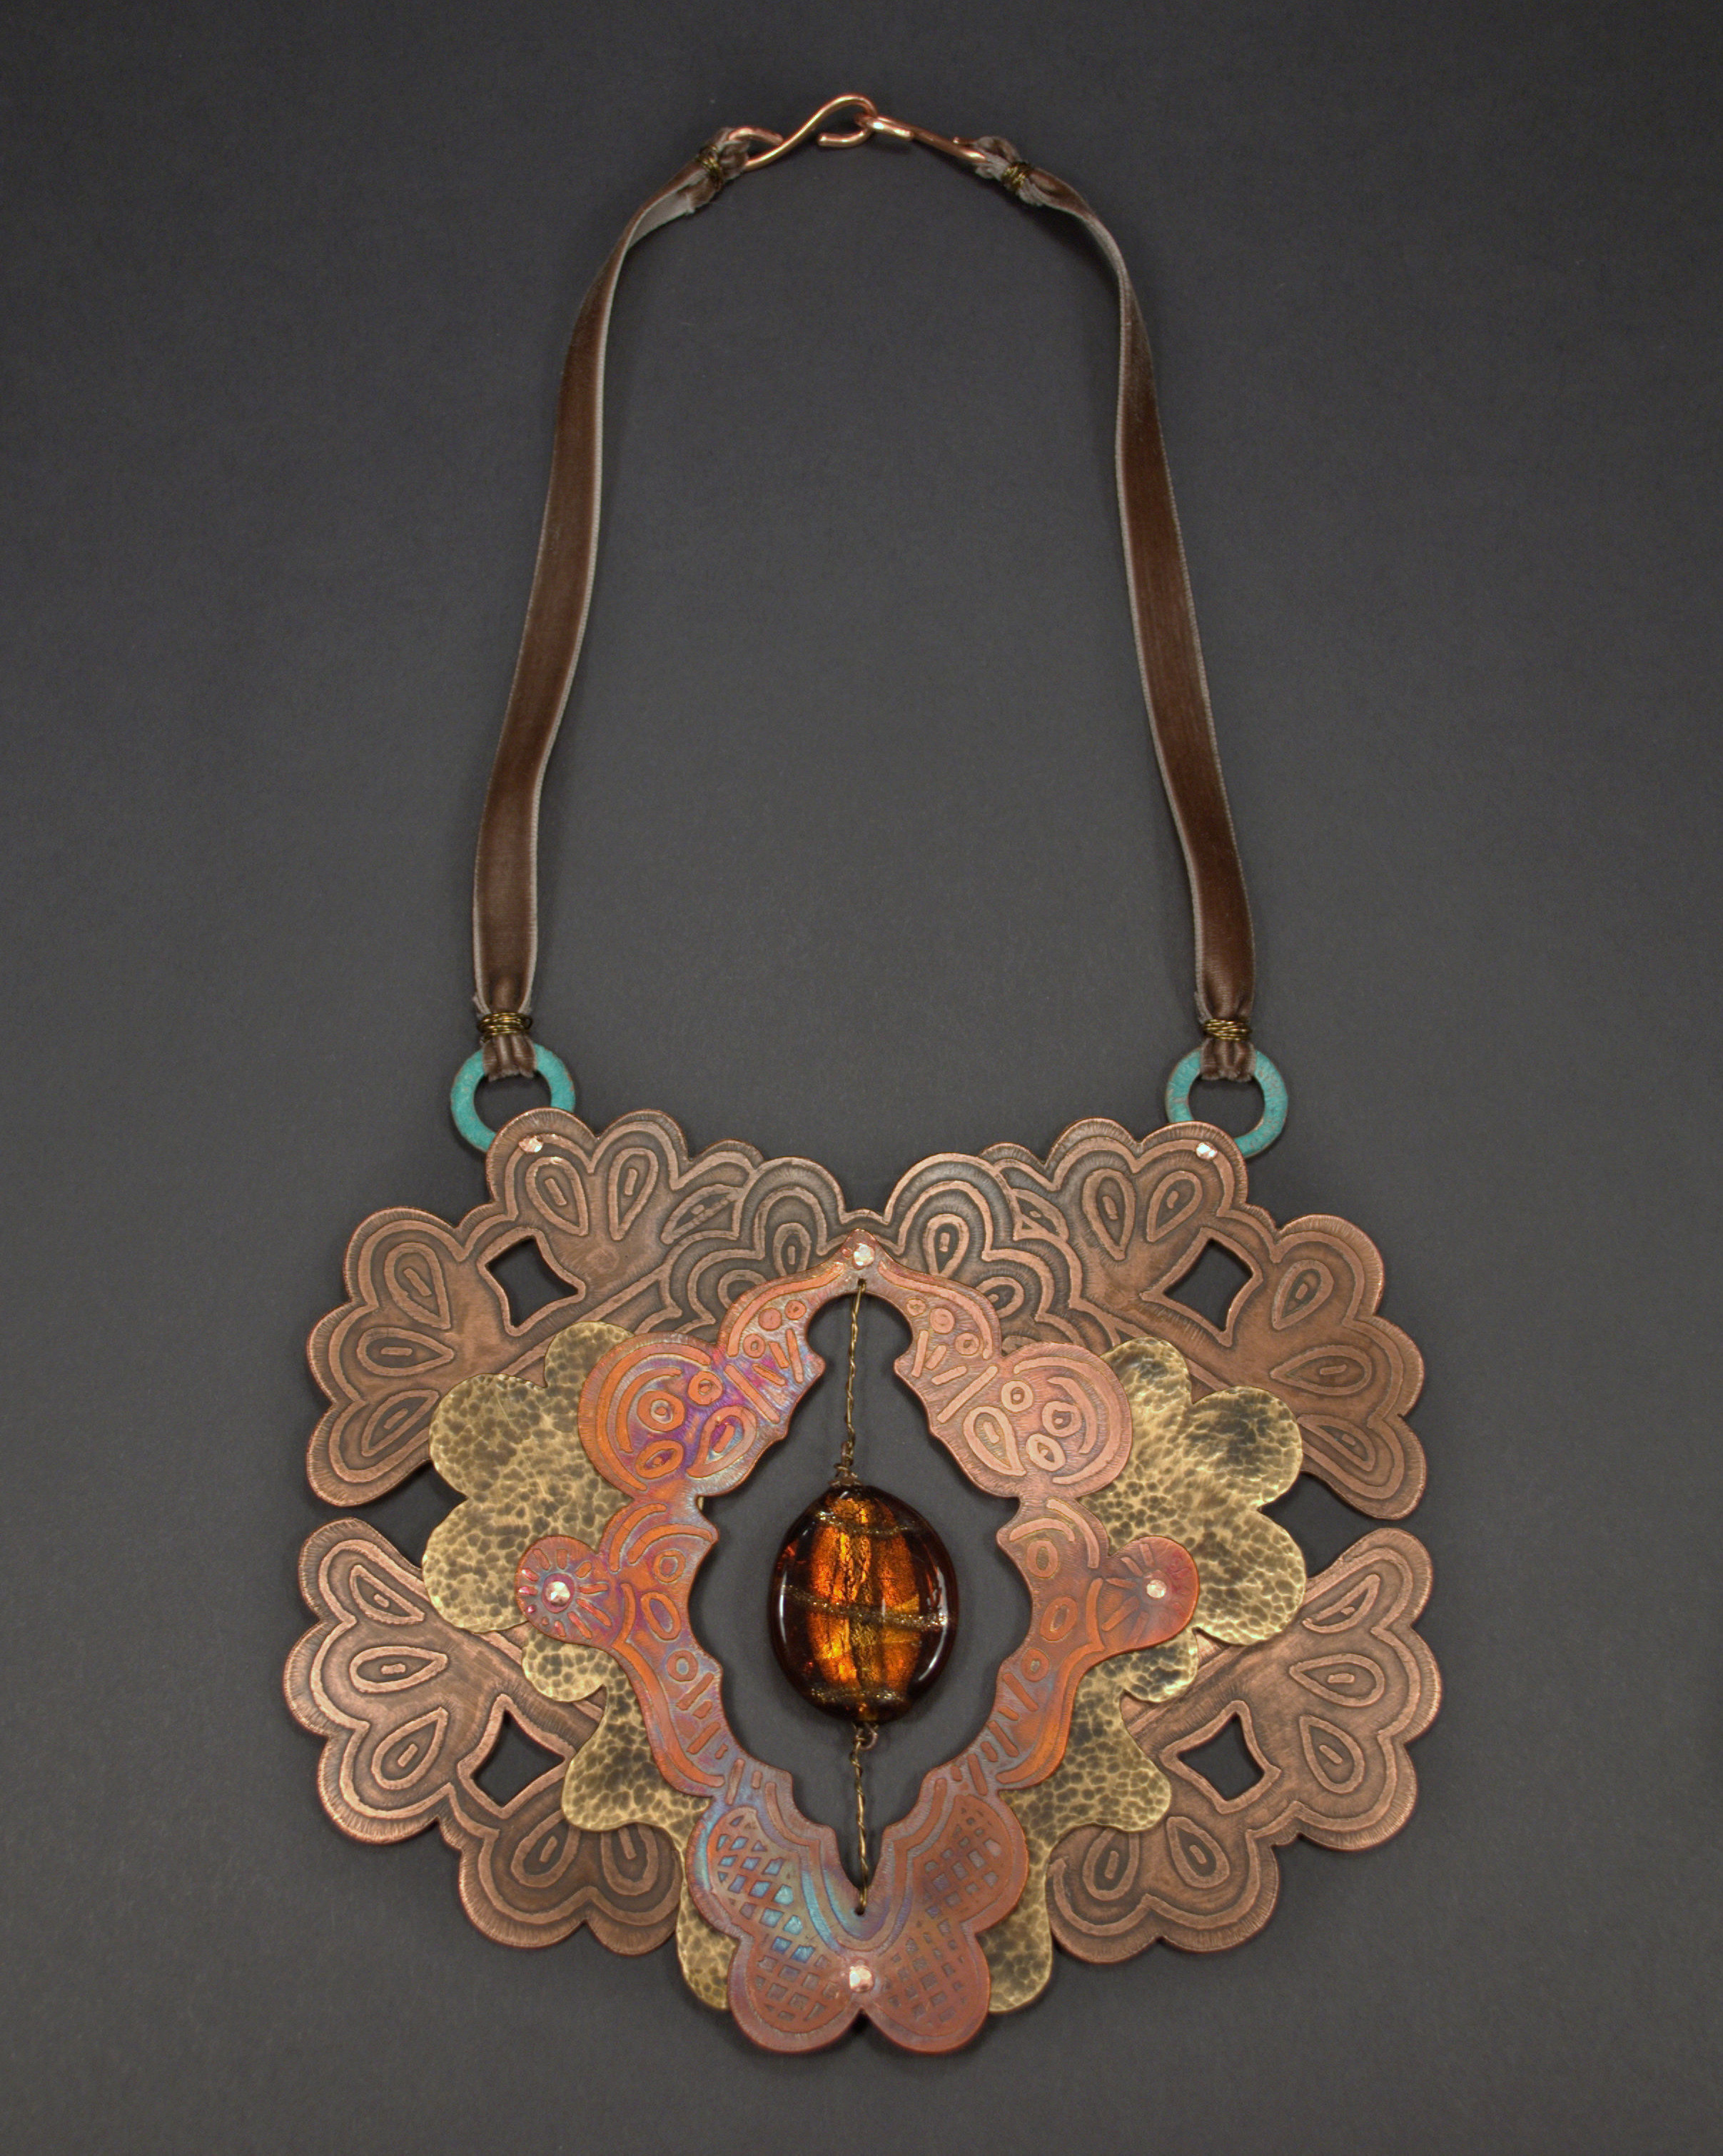 Dawna_Gillespie_copper_brass_necklace_Disposition-000